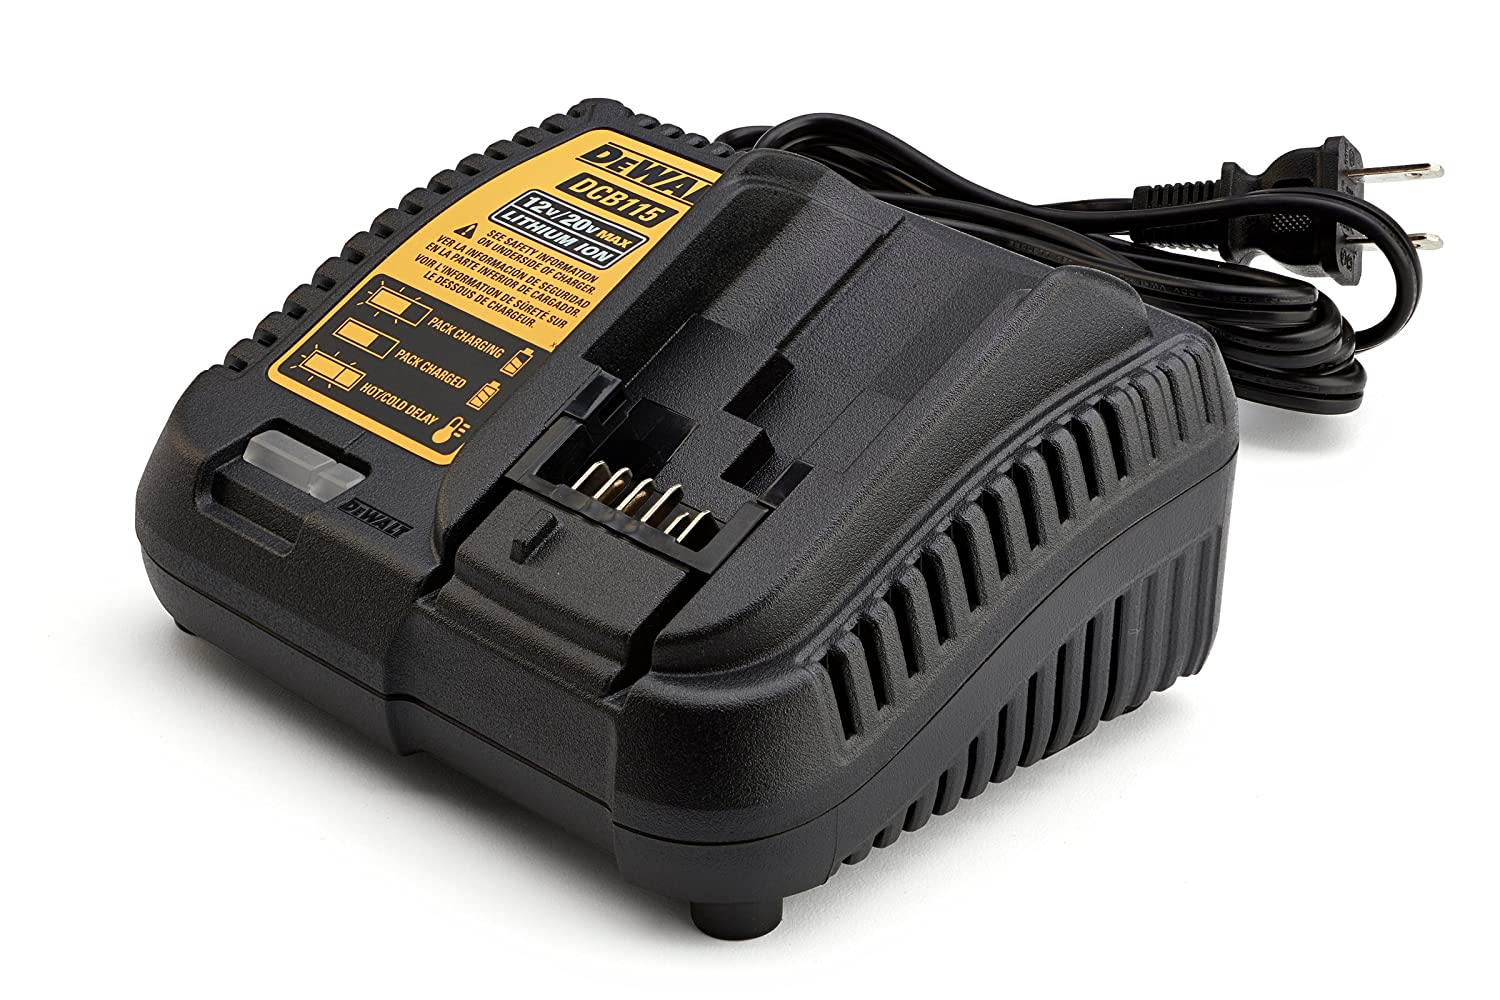 DEWALT DCB115 MAX Lithium Ion Battery Charger, 12V-20V